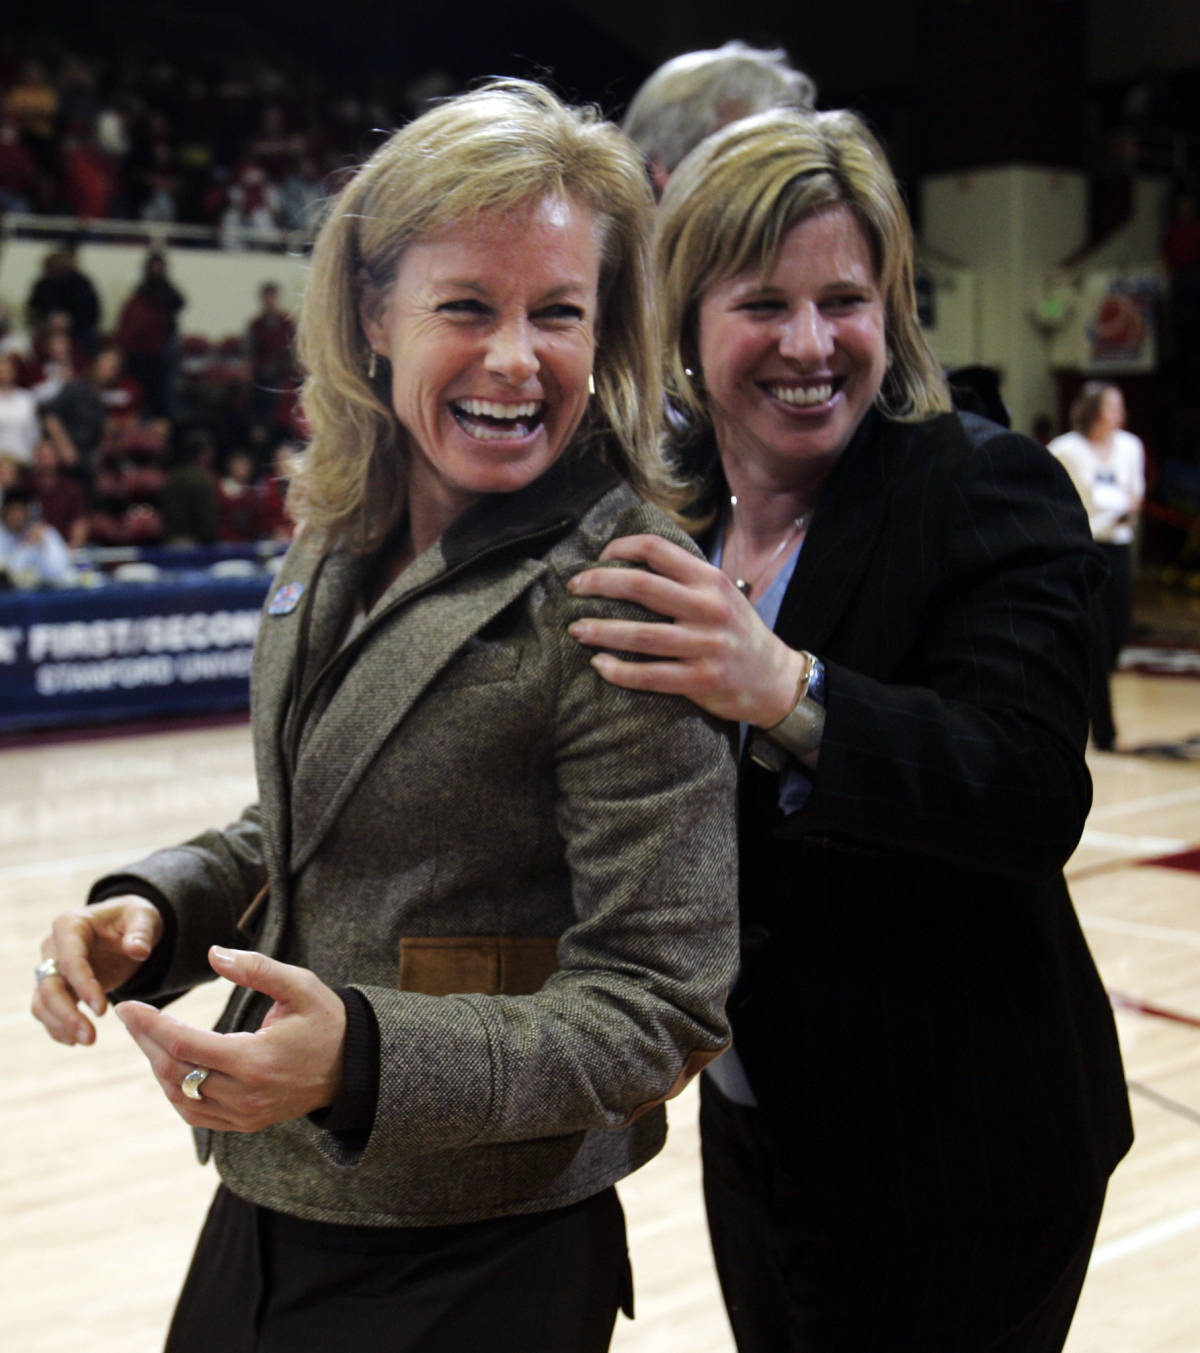 Florida State head coach Sue Semrau, left, and associate head coach Cori Close, right, celebrate after upsetting Stanford 68-61 in their second-round game in the NCAA women's basketball tournament in Stanford, Calif., Monday, March 19, 2007. (AP Photo/Paul Sakuma)